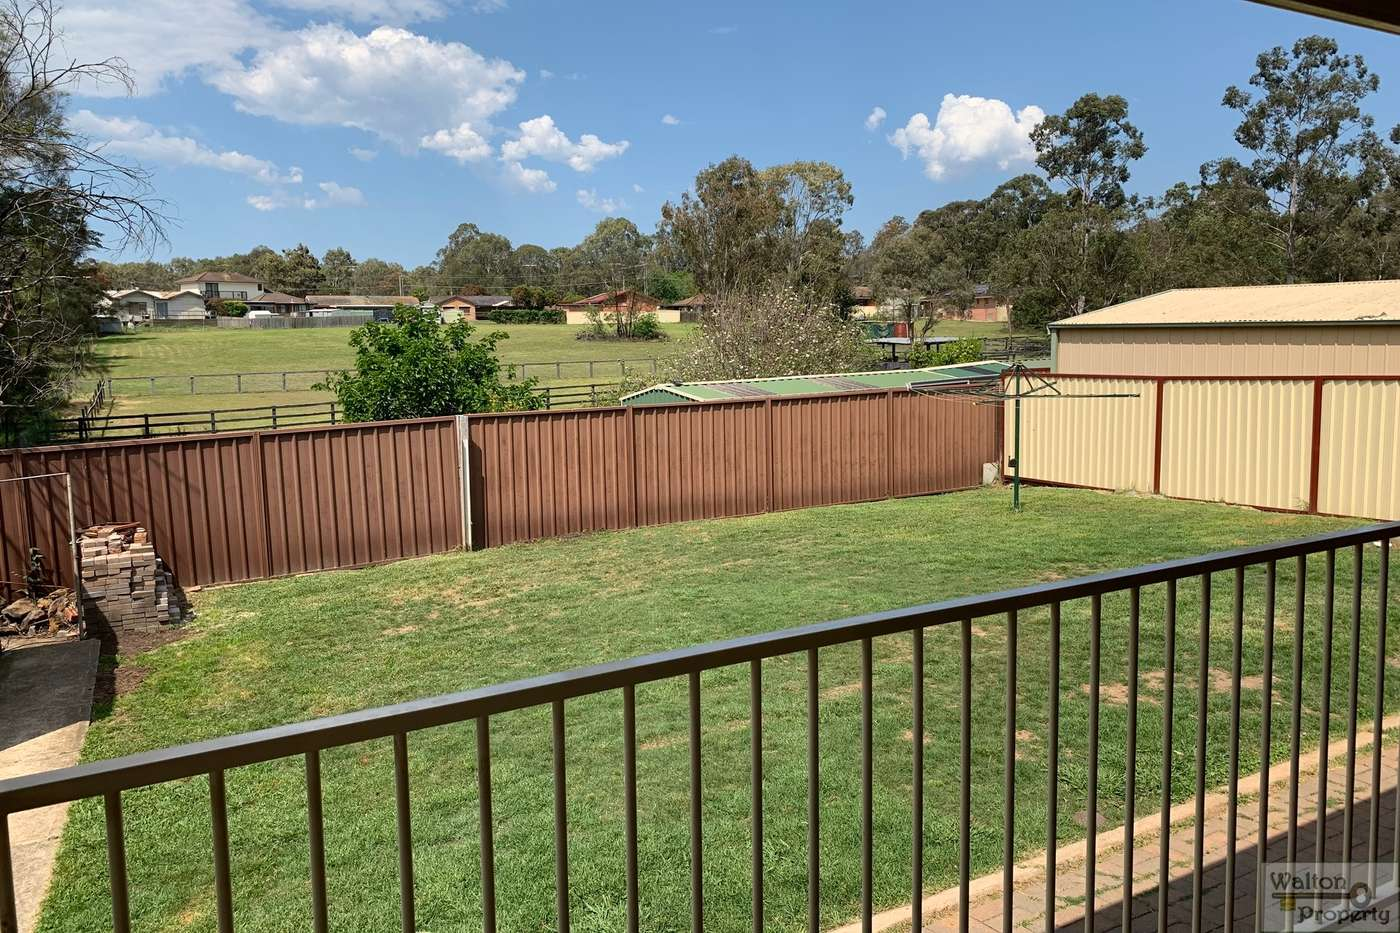 Main view of Homely house listing, Address available on request, Glossodia, NSW 2756